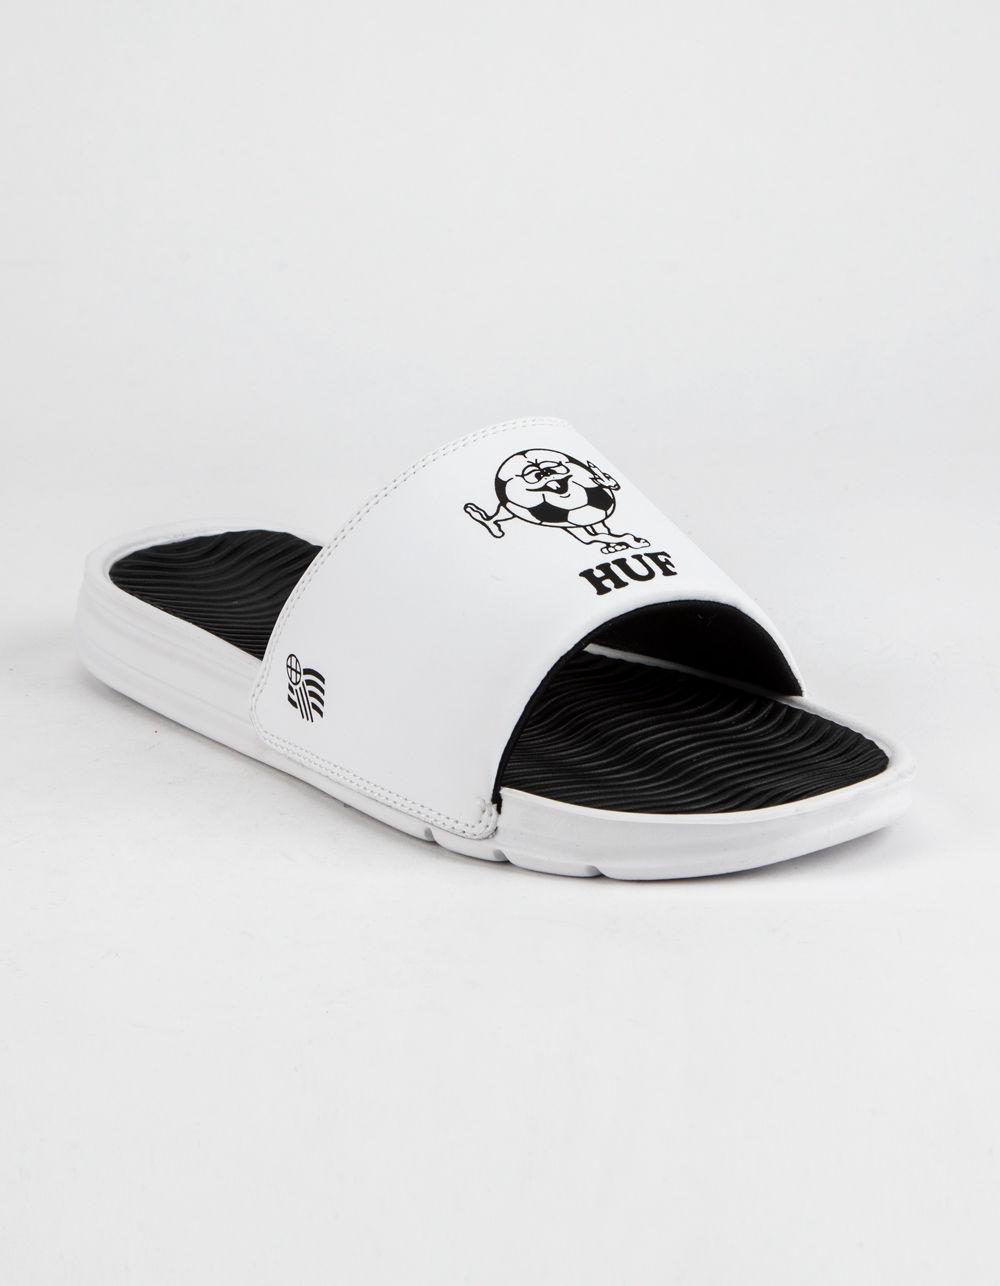 f80339c8677f Lyst - Huf Wc Foul Play Mens Slide Sandals in White for Men